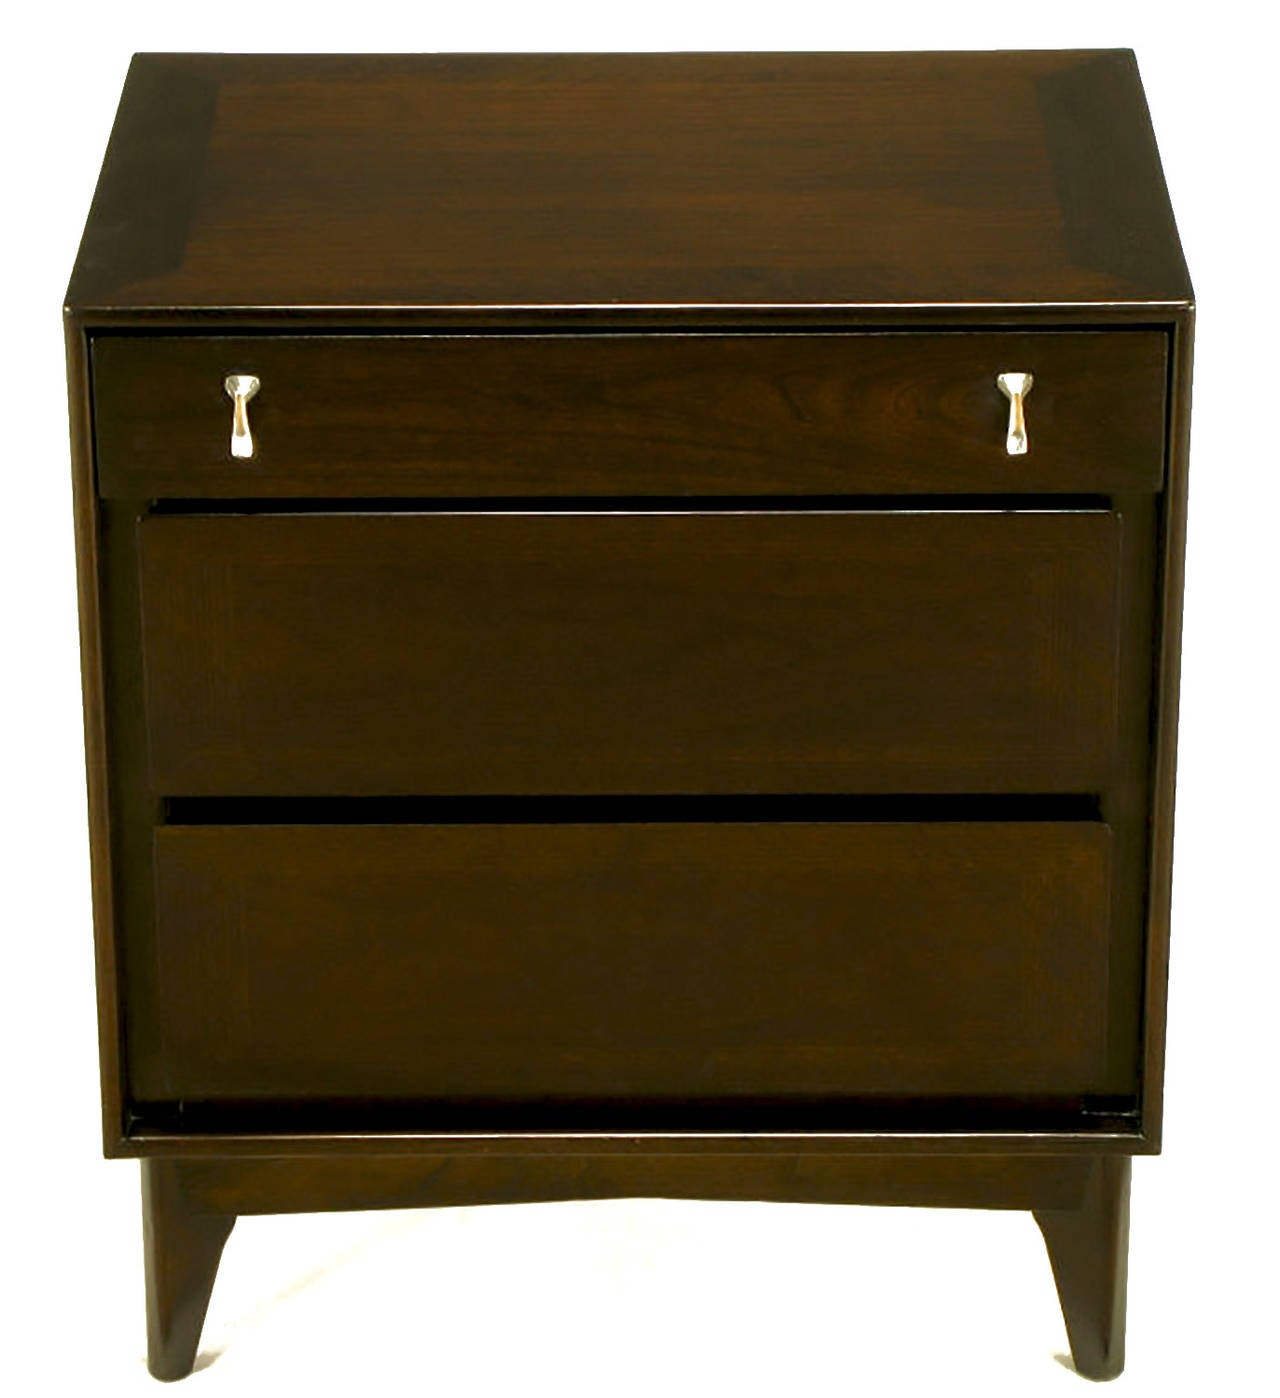 Pair of Red Lion Table Co. dark walnut three-drawer nightstands with sculpted and polished zinc pulls. Canted legs and recessed apron, refinished.